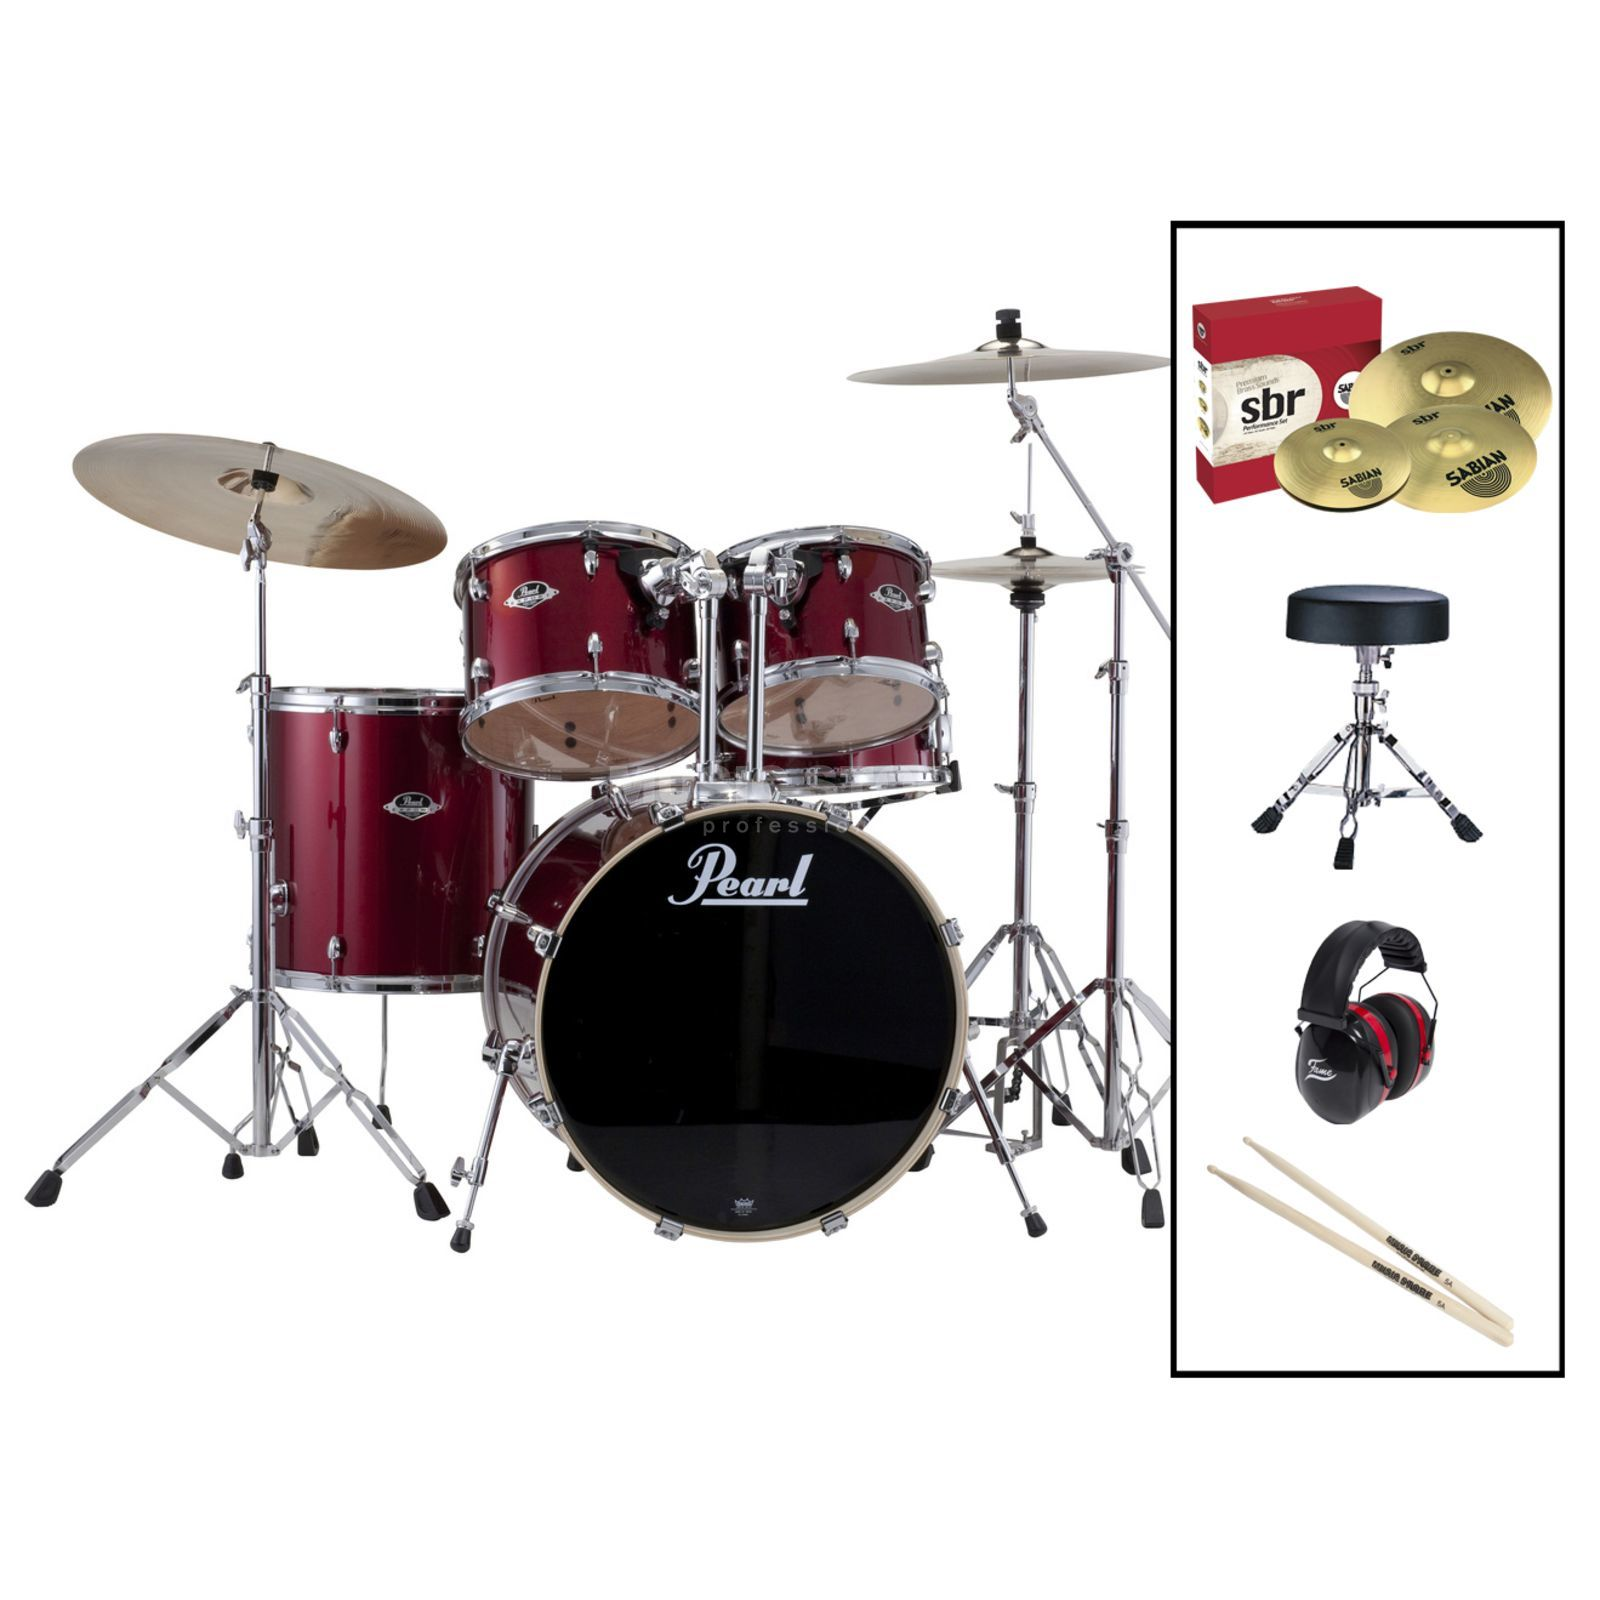 SET Pearl Export 705Z/C-91 inkl. Hocker, Gehörschutz & Sticks Produktbillede